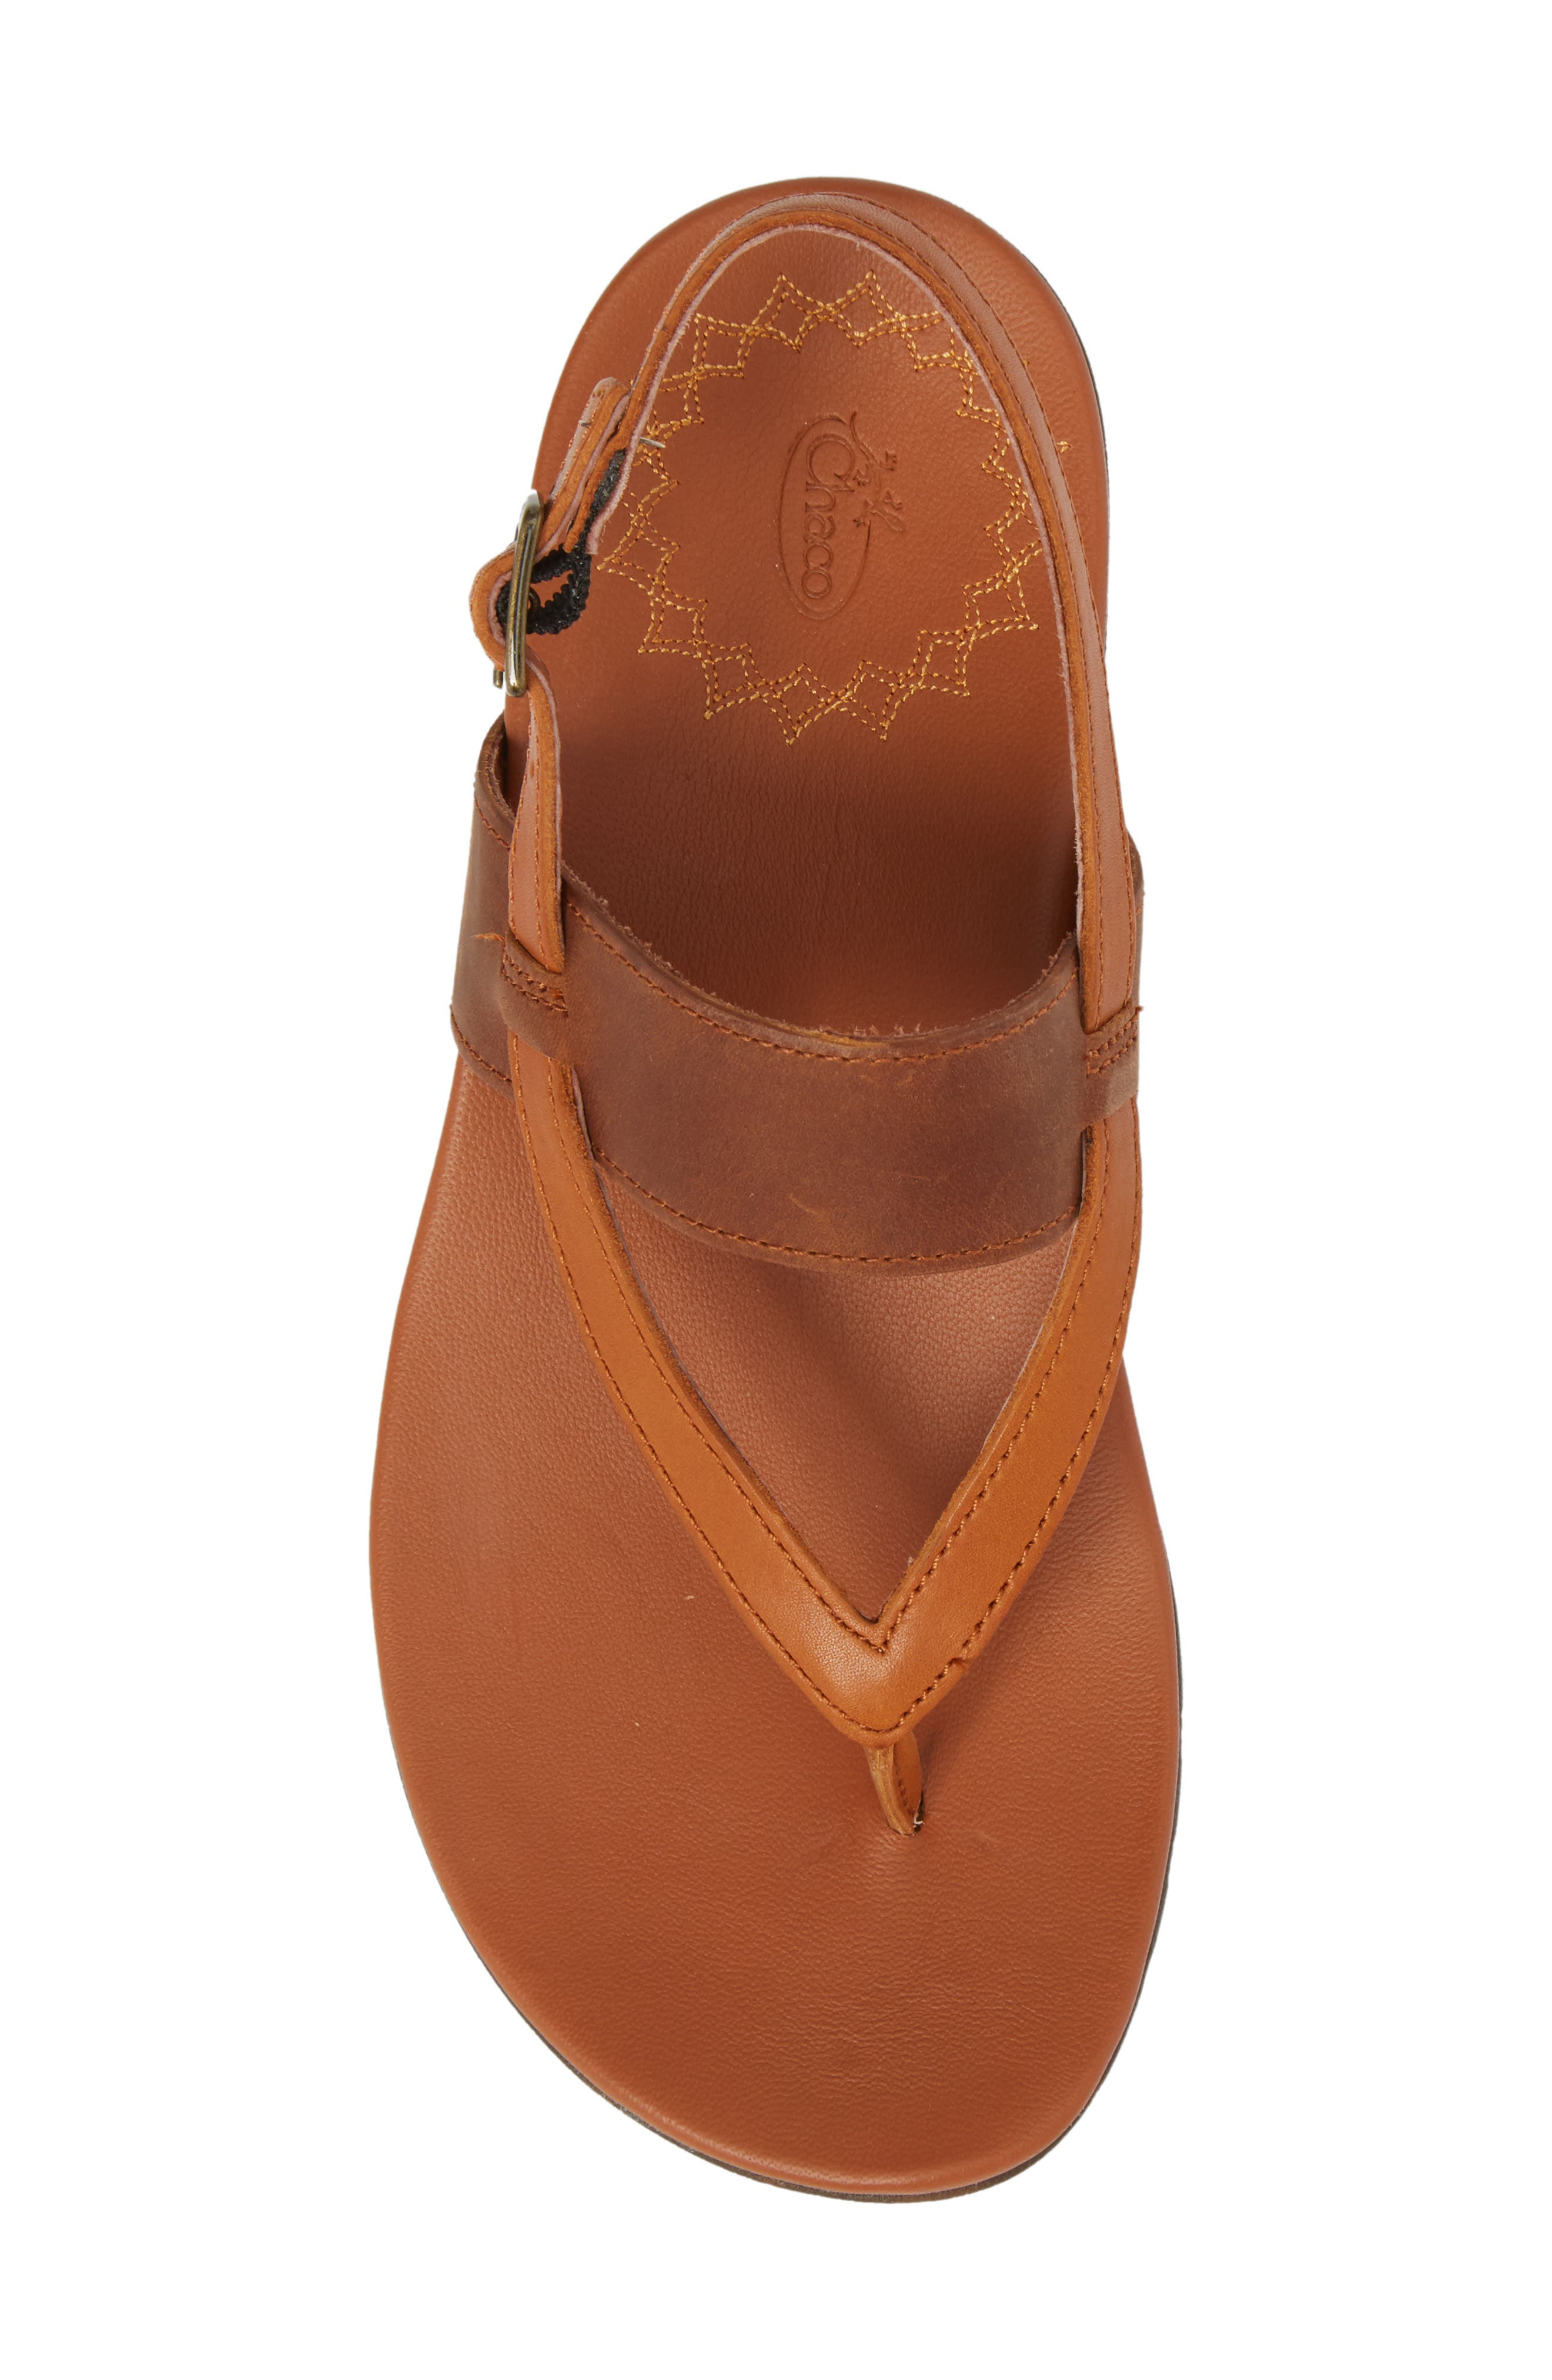 Maya II Sandal,                             Alternate thumbnail 5, color,                             Rust Leather